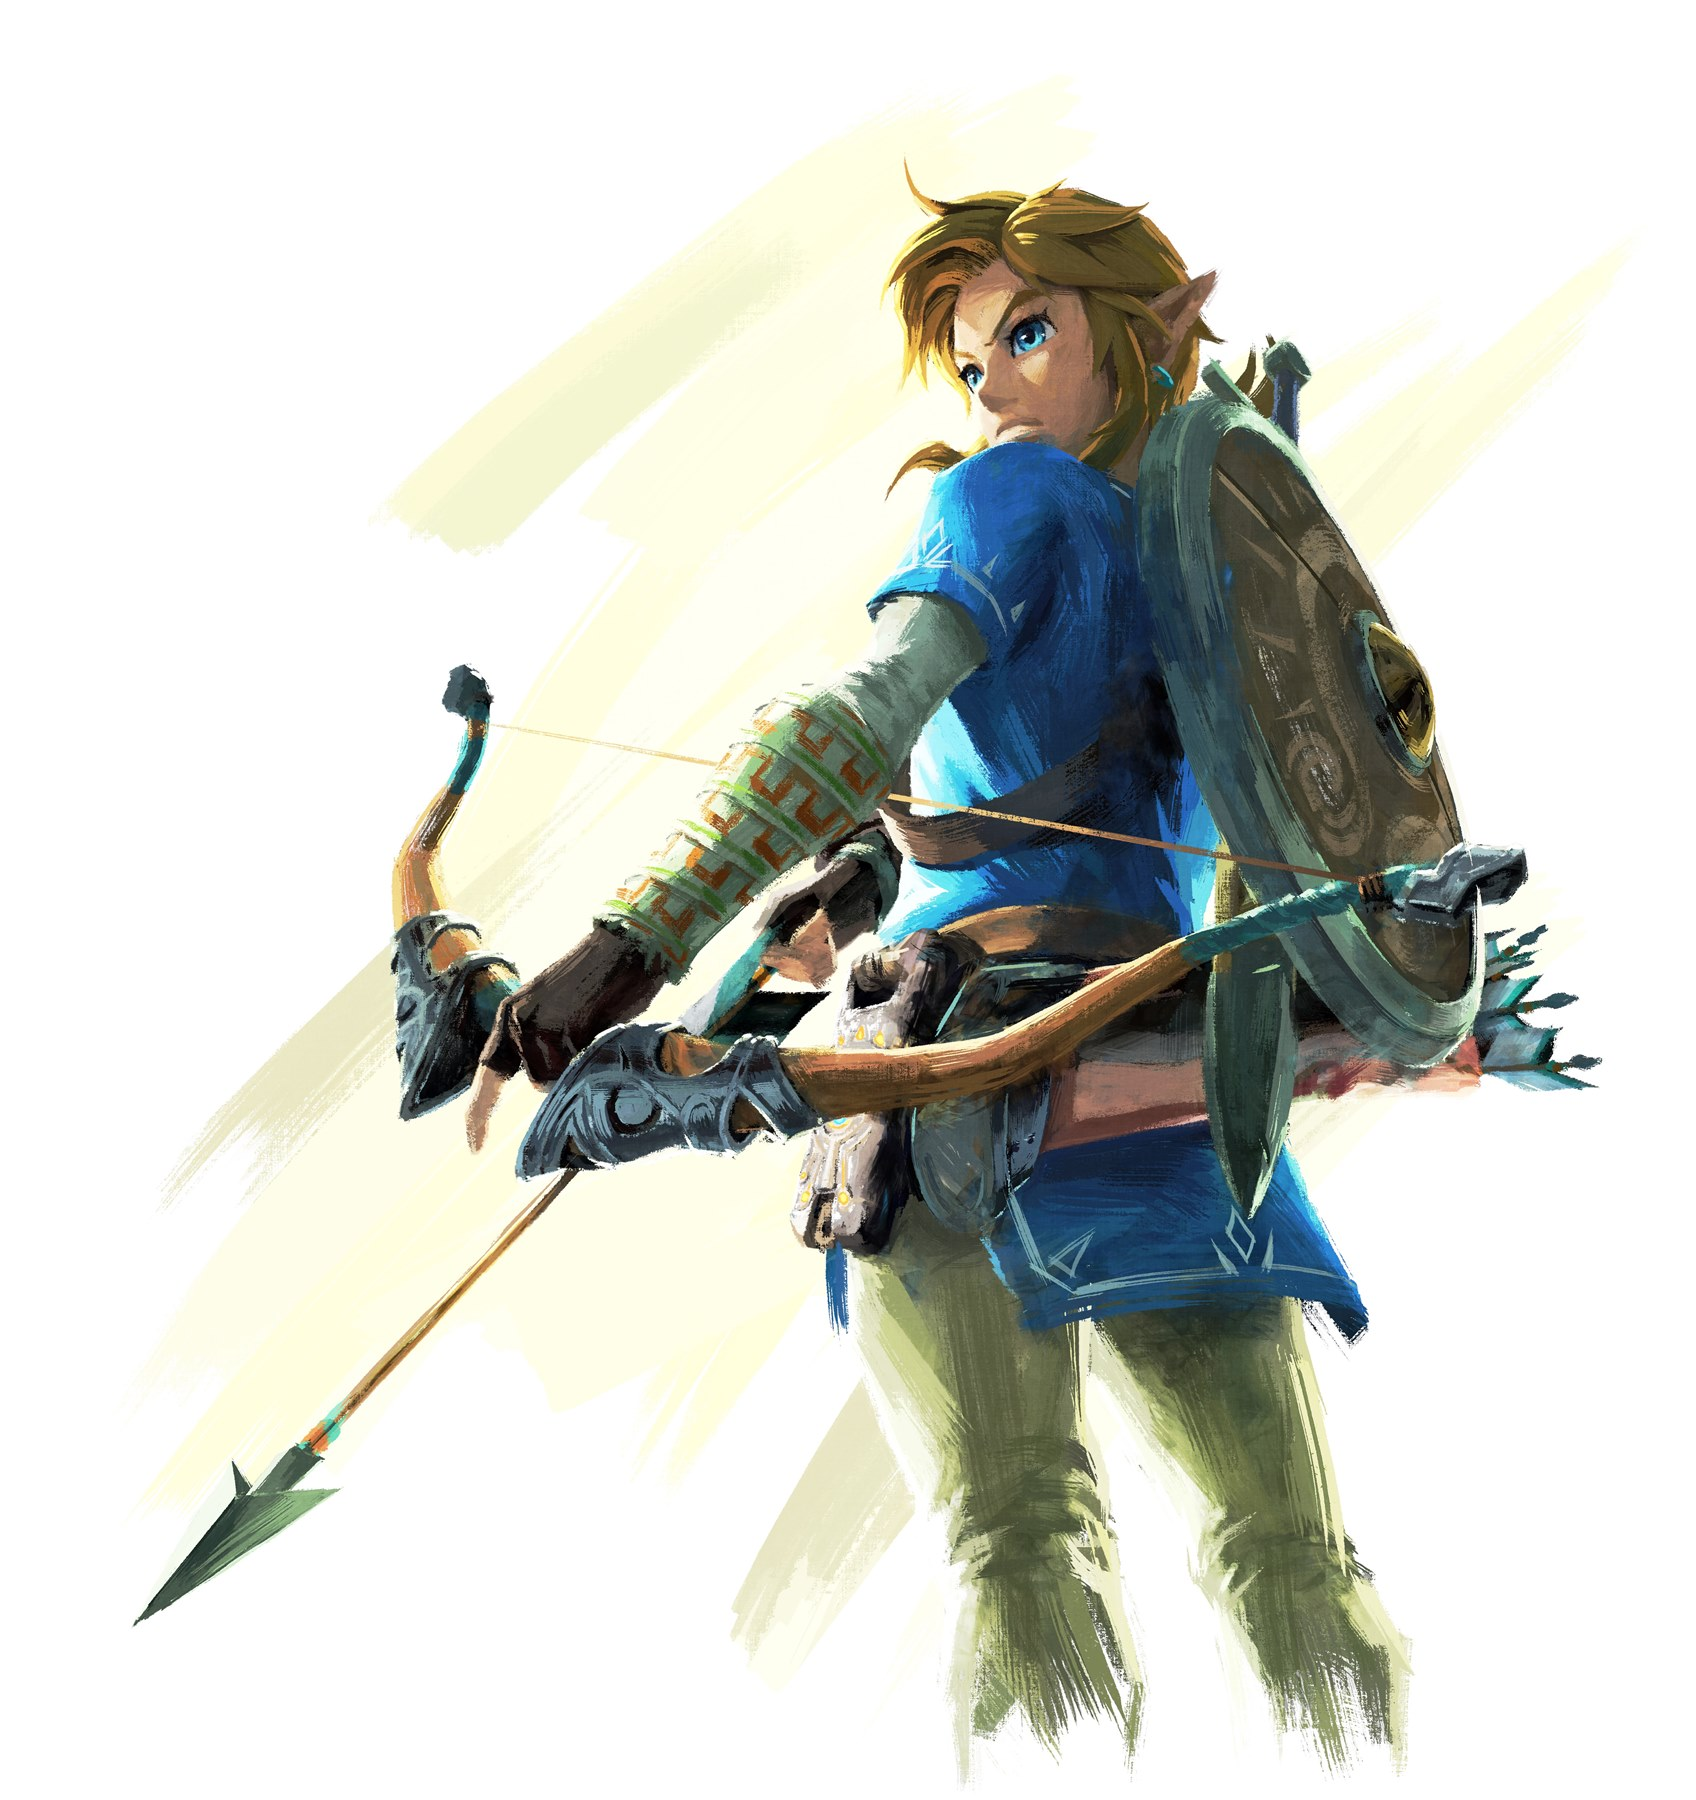 Арт к игре The Legend of Zelda Breath of the Wild